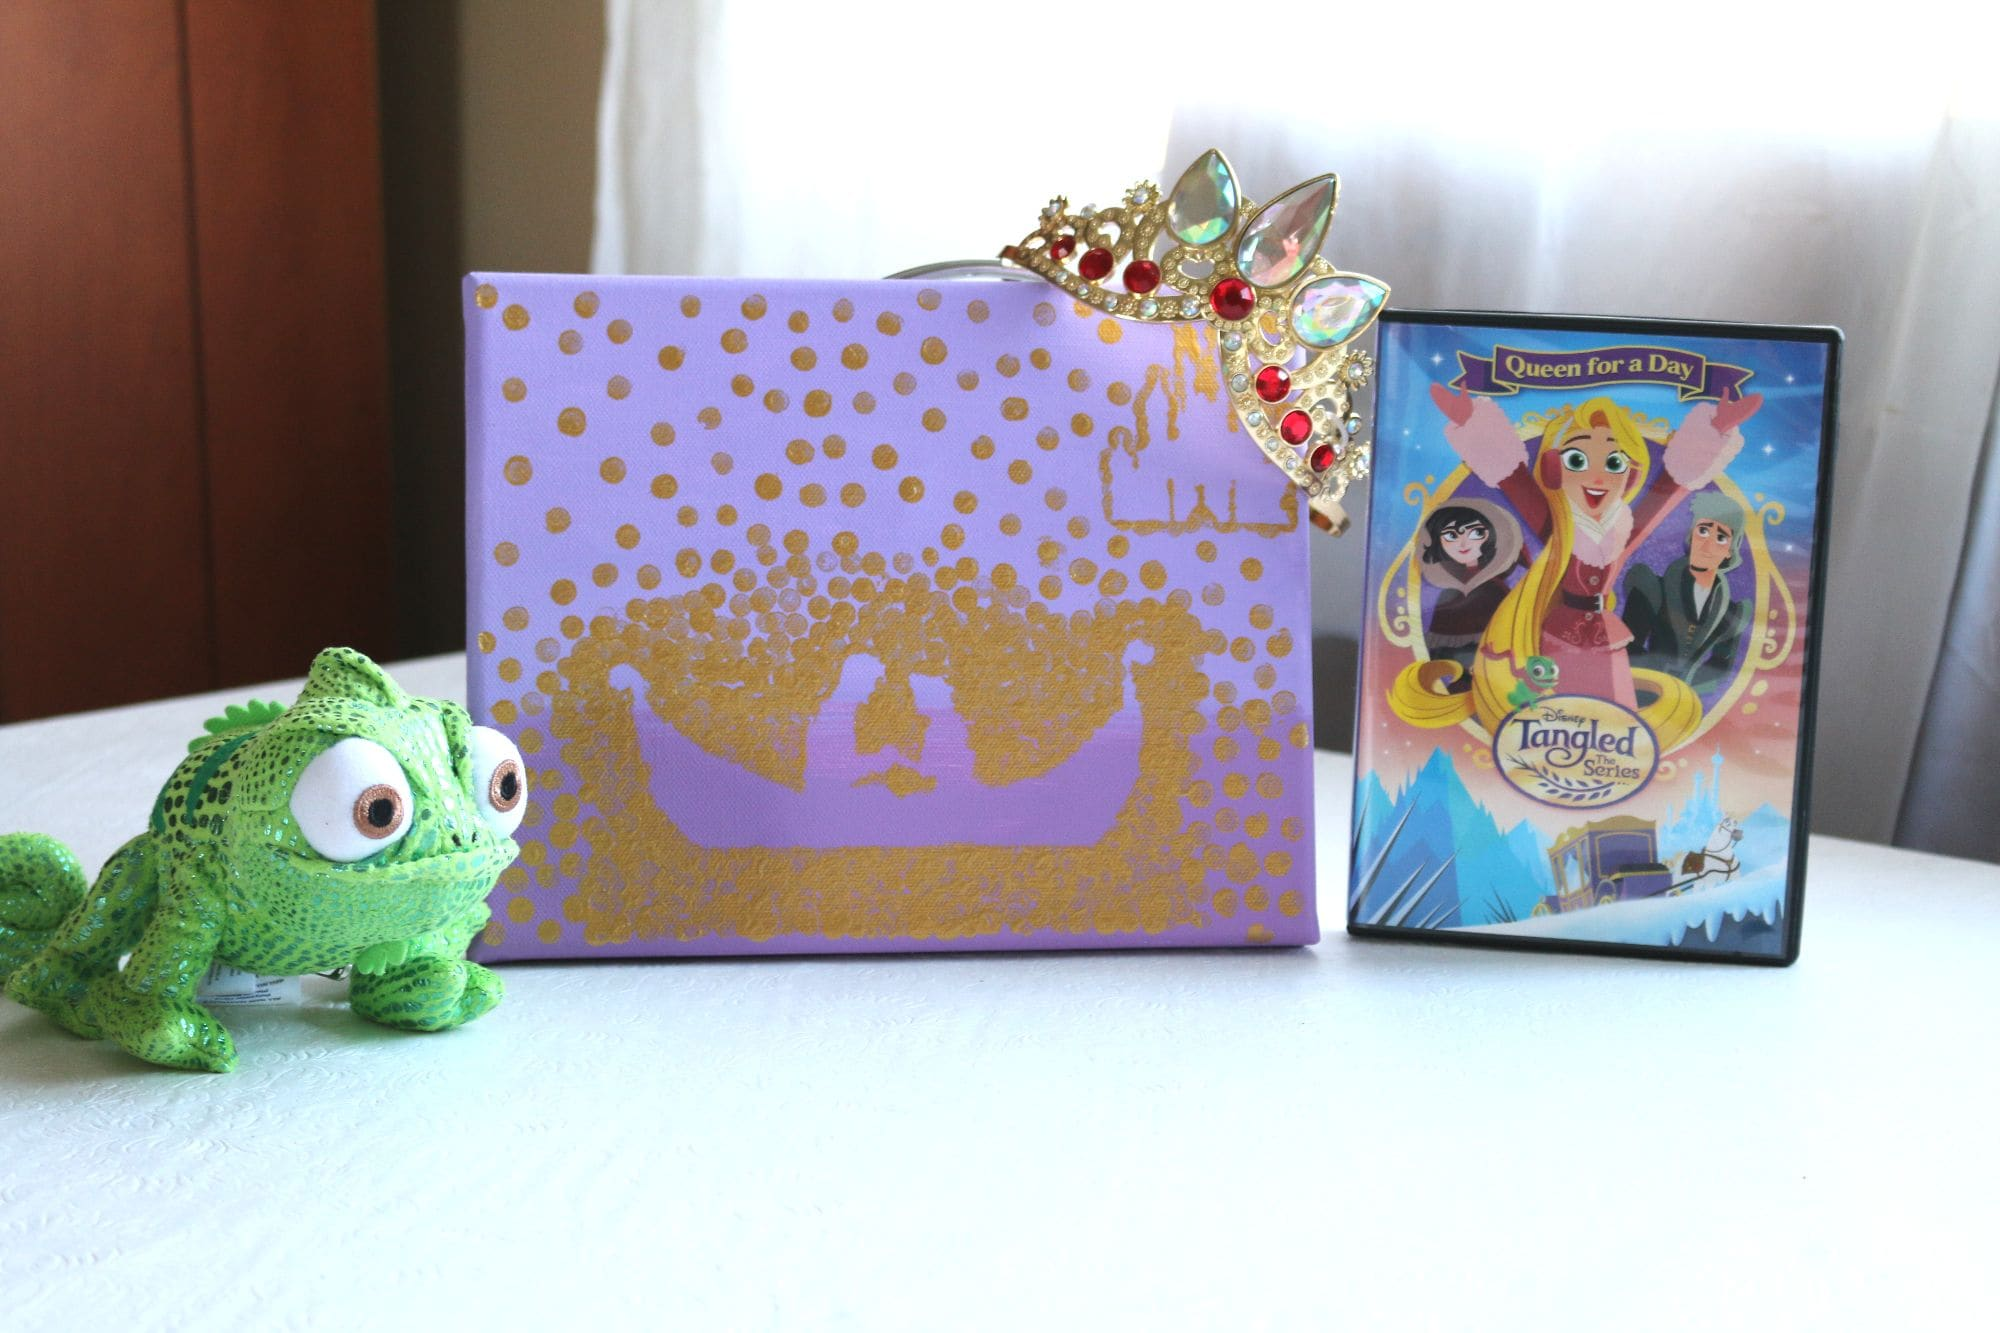 Disney-Tangled-The-Series-Queen-for-a-Day-DVD